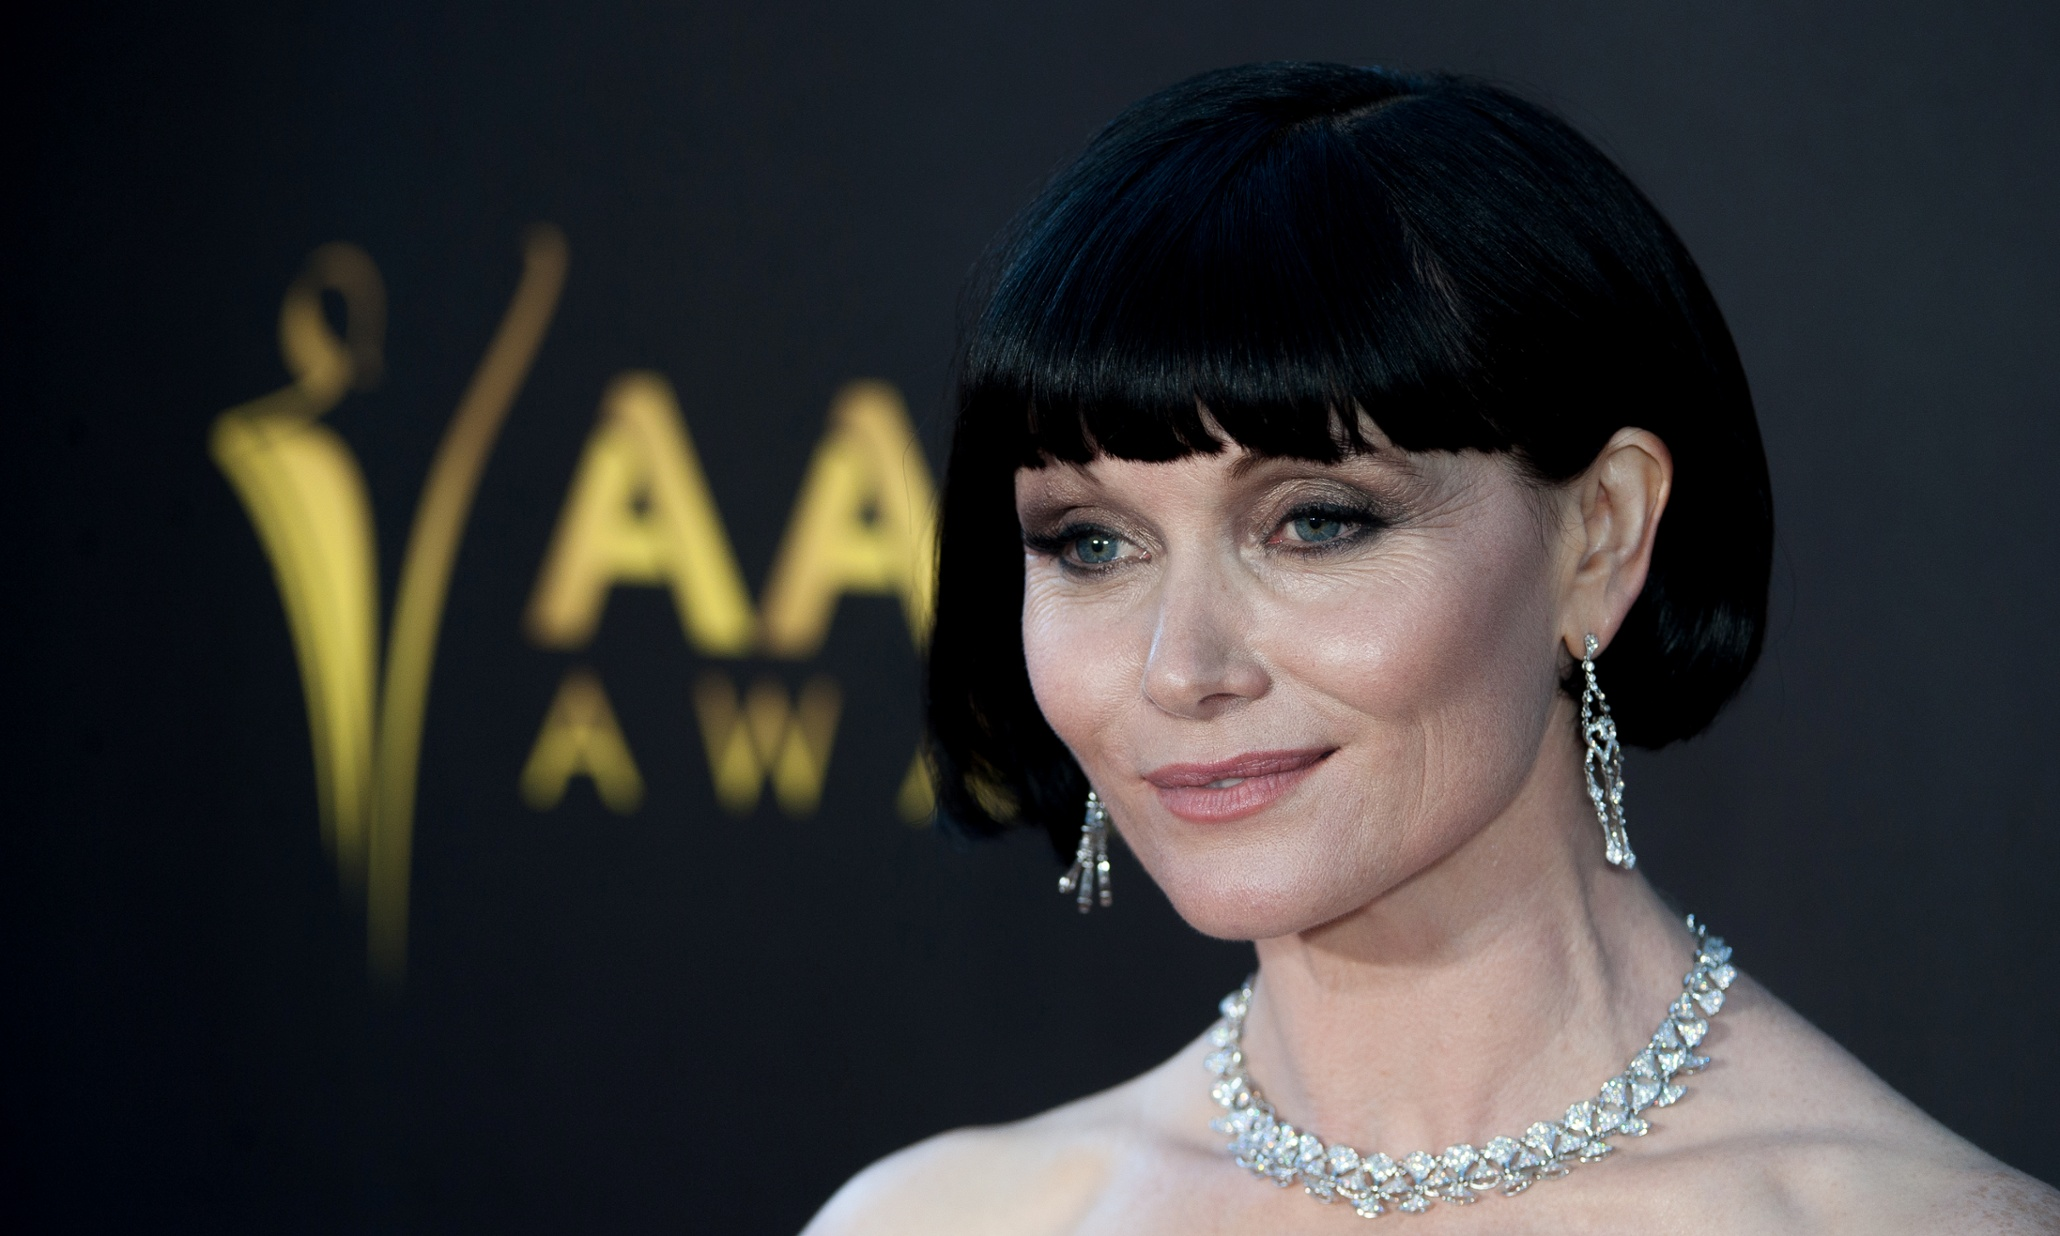 Essie Davis Babadook essie davis on the babadook: people made masks of